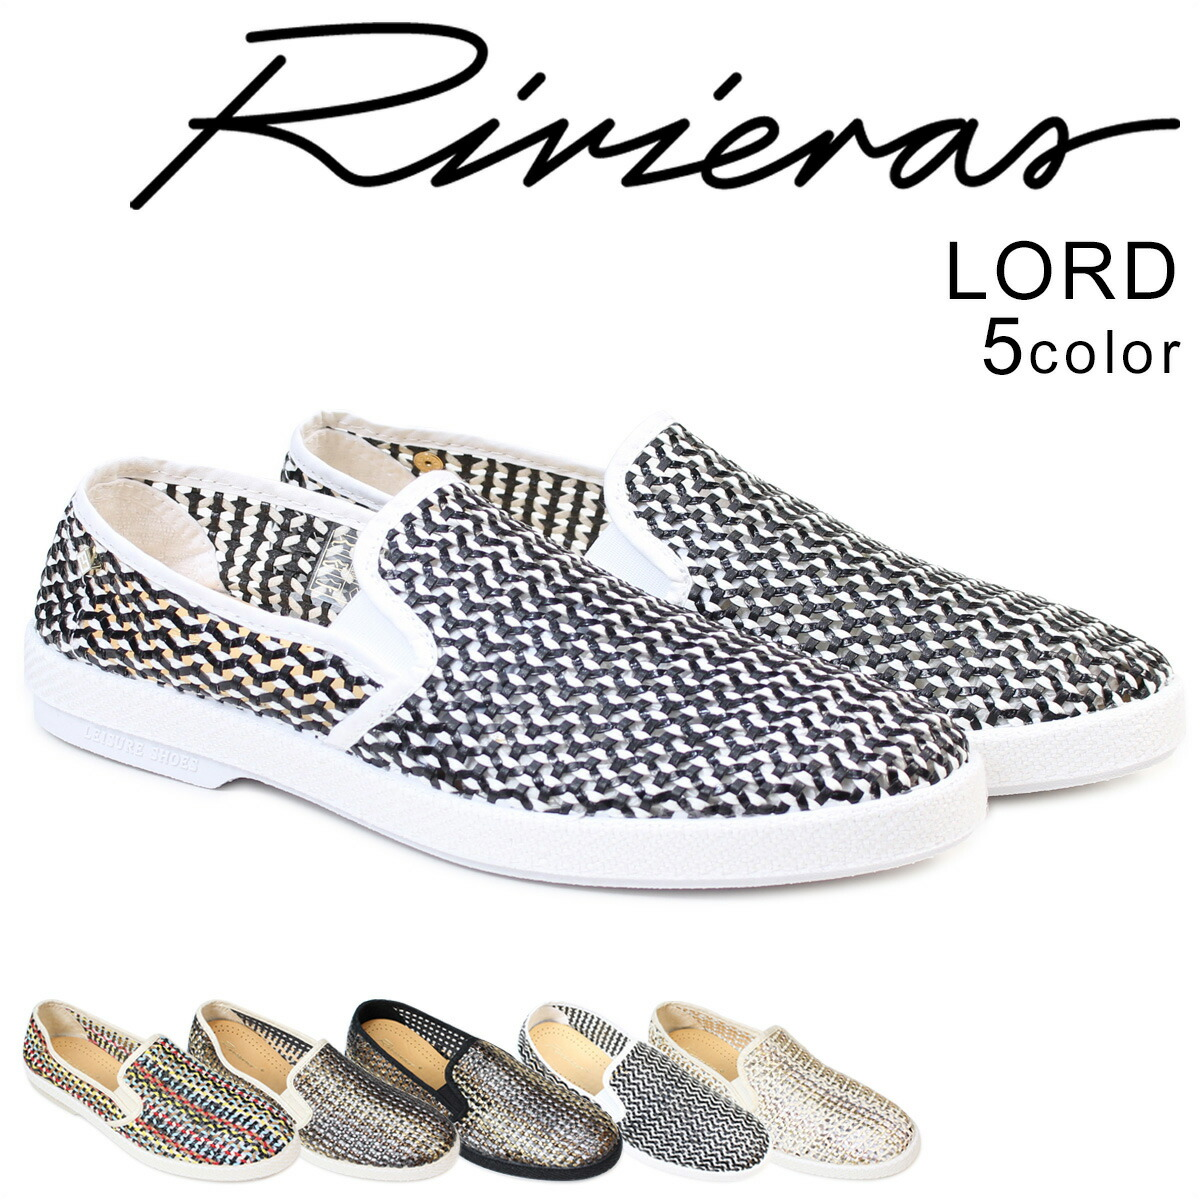 Sneak Online Shop Riviera Rivieras Mens Slip On Lord Shoes Loaded D Island Moccasine Lacoste Suede Black And